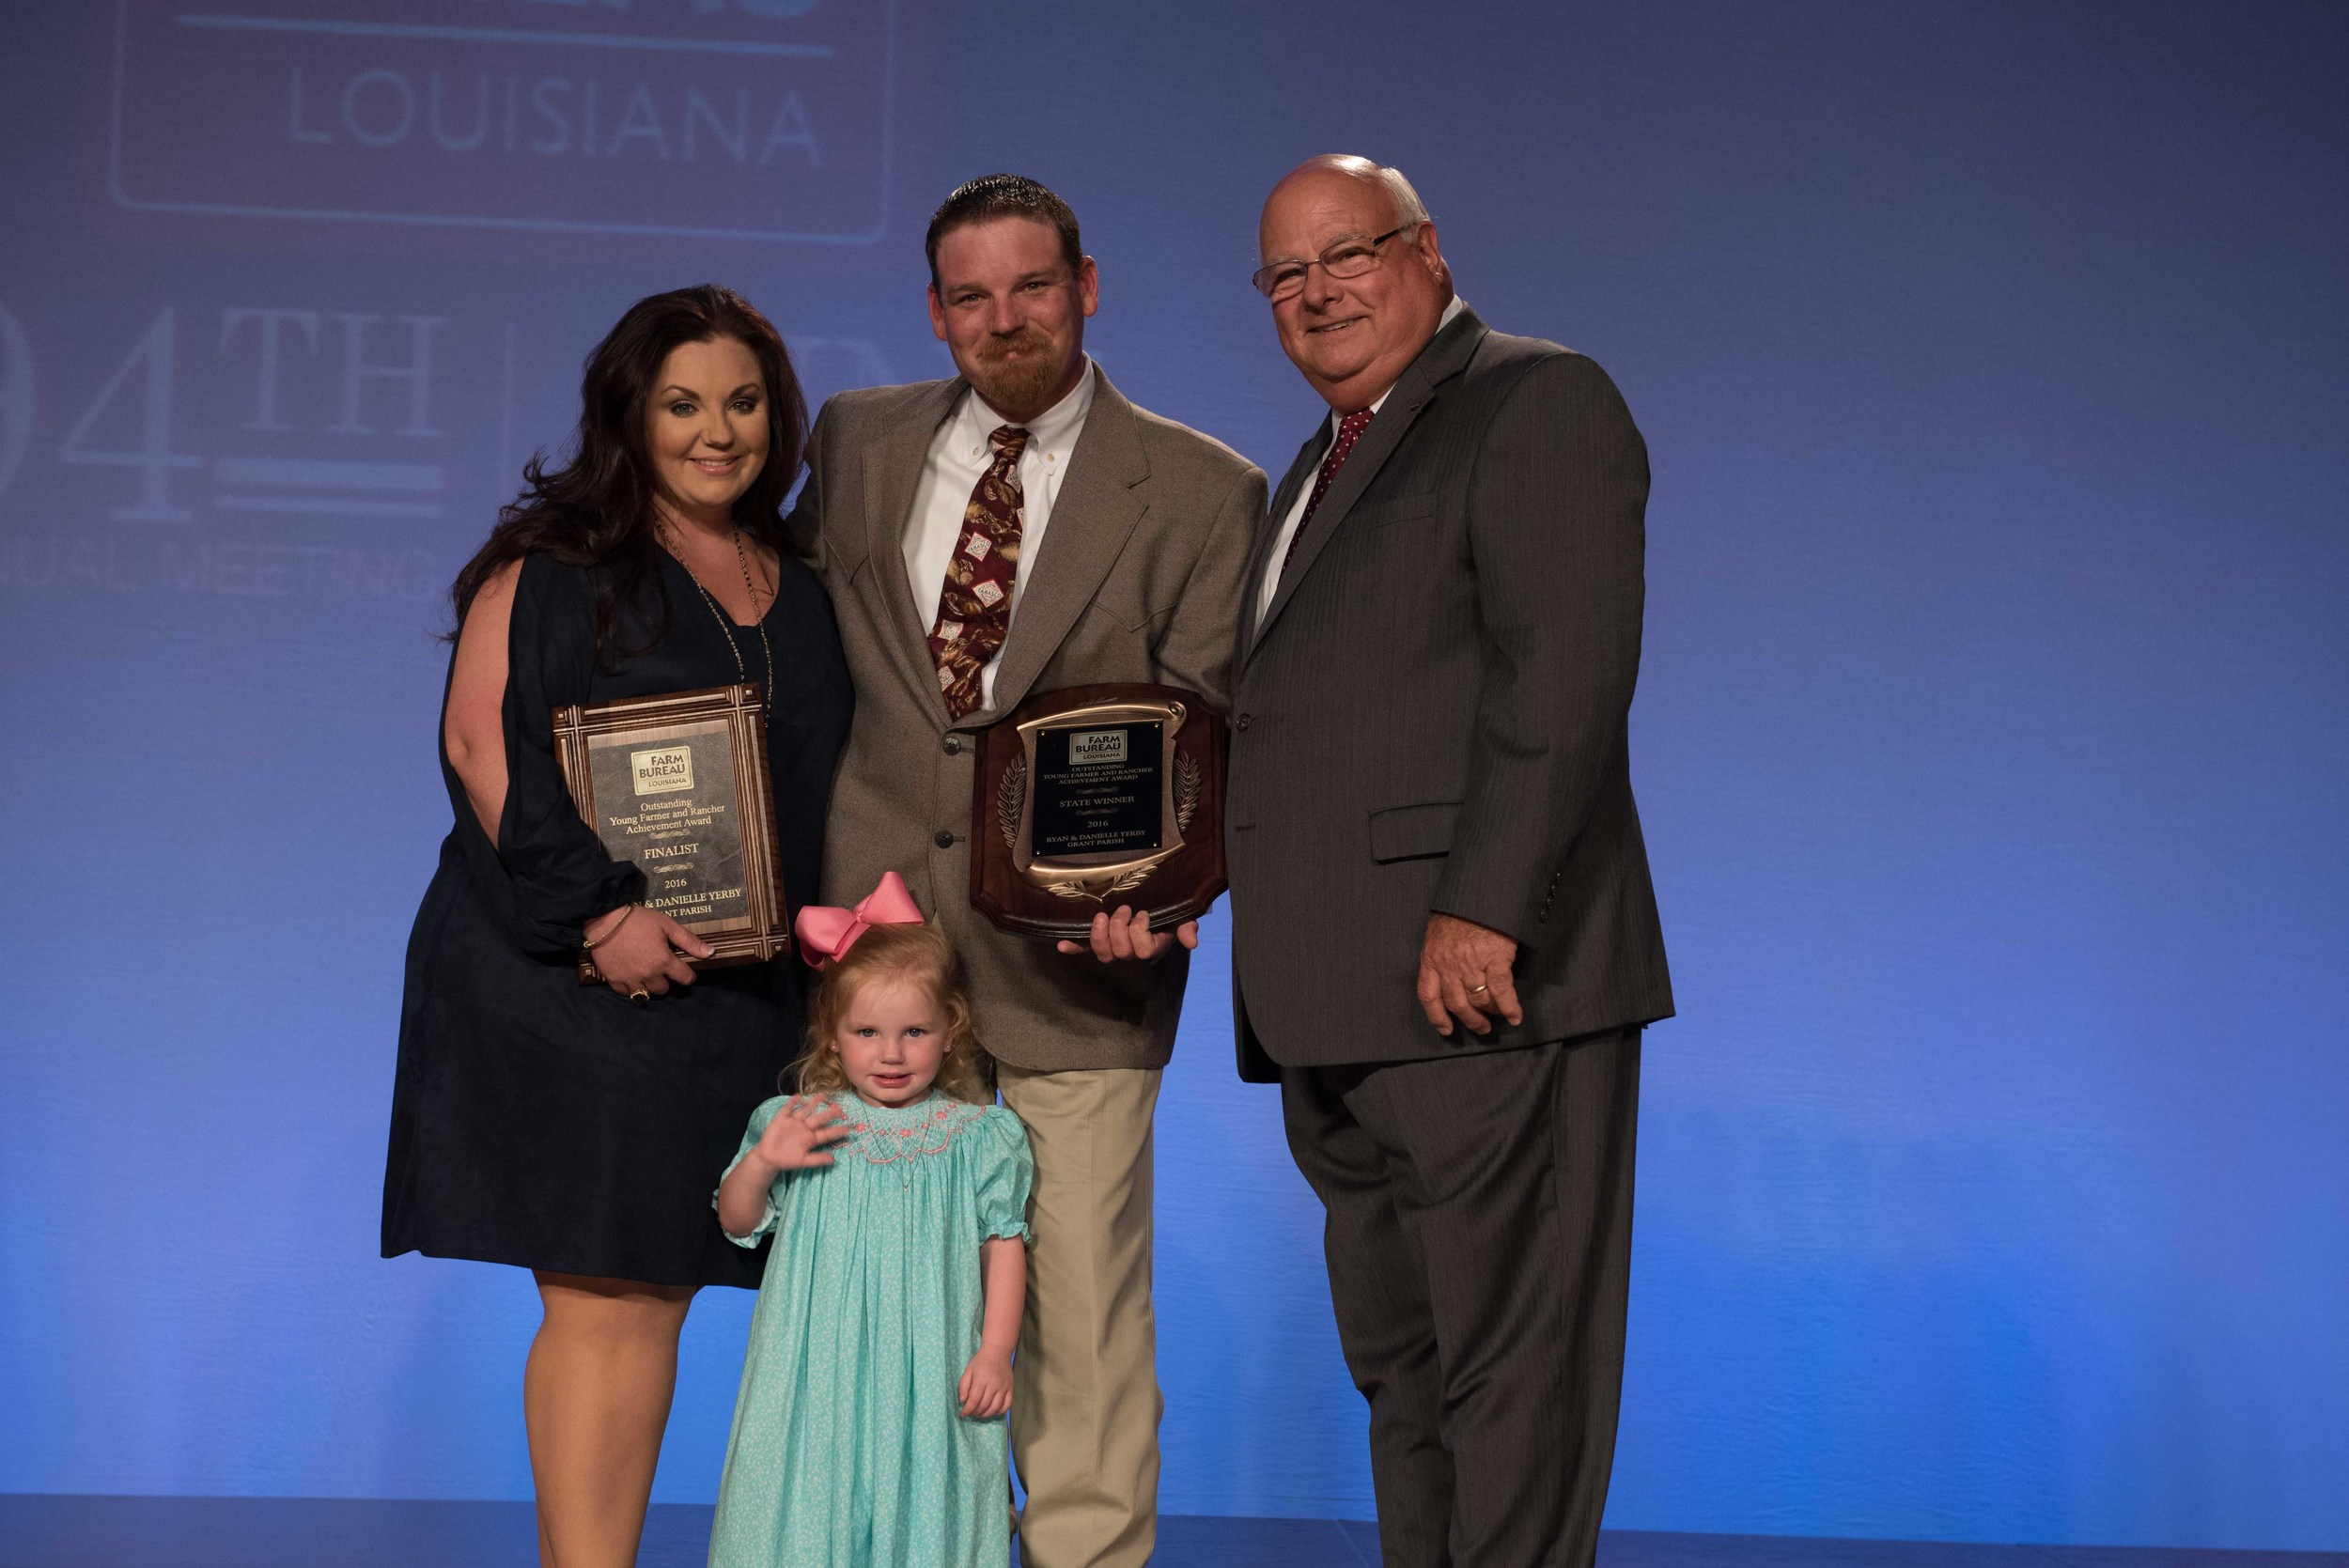 Ryan and Danielle Yerby of Grant Parish accept the 2016 Young Farmer and Rancher Achievement Award Thursday, June 23. Pictured, left to right: Danielle Yerby, Ryan Yerby, Reagan Yerby (front) and Louisiana Farm Bureau President Ronnie Anderson.